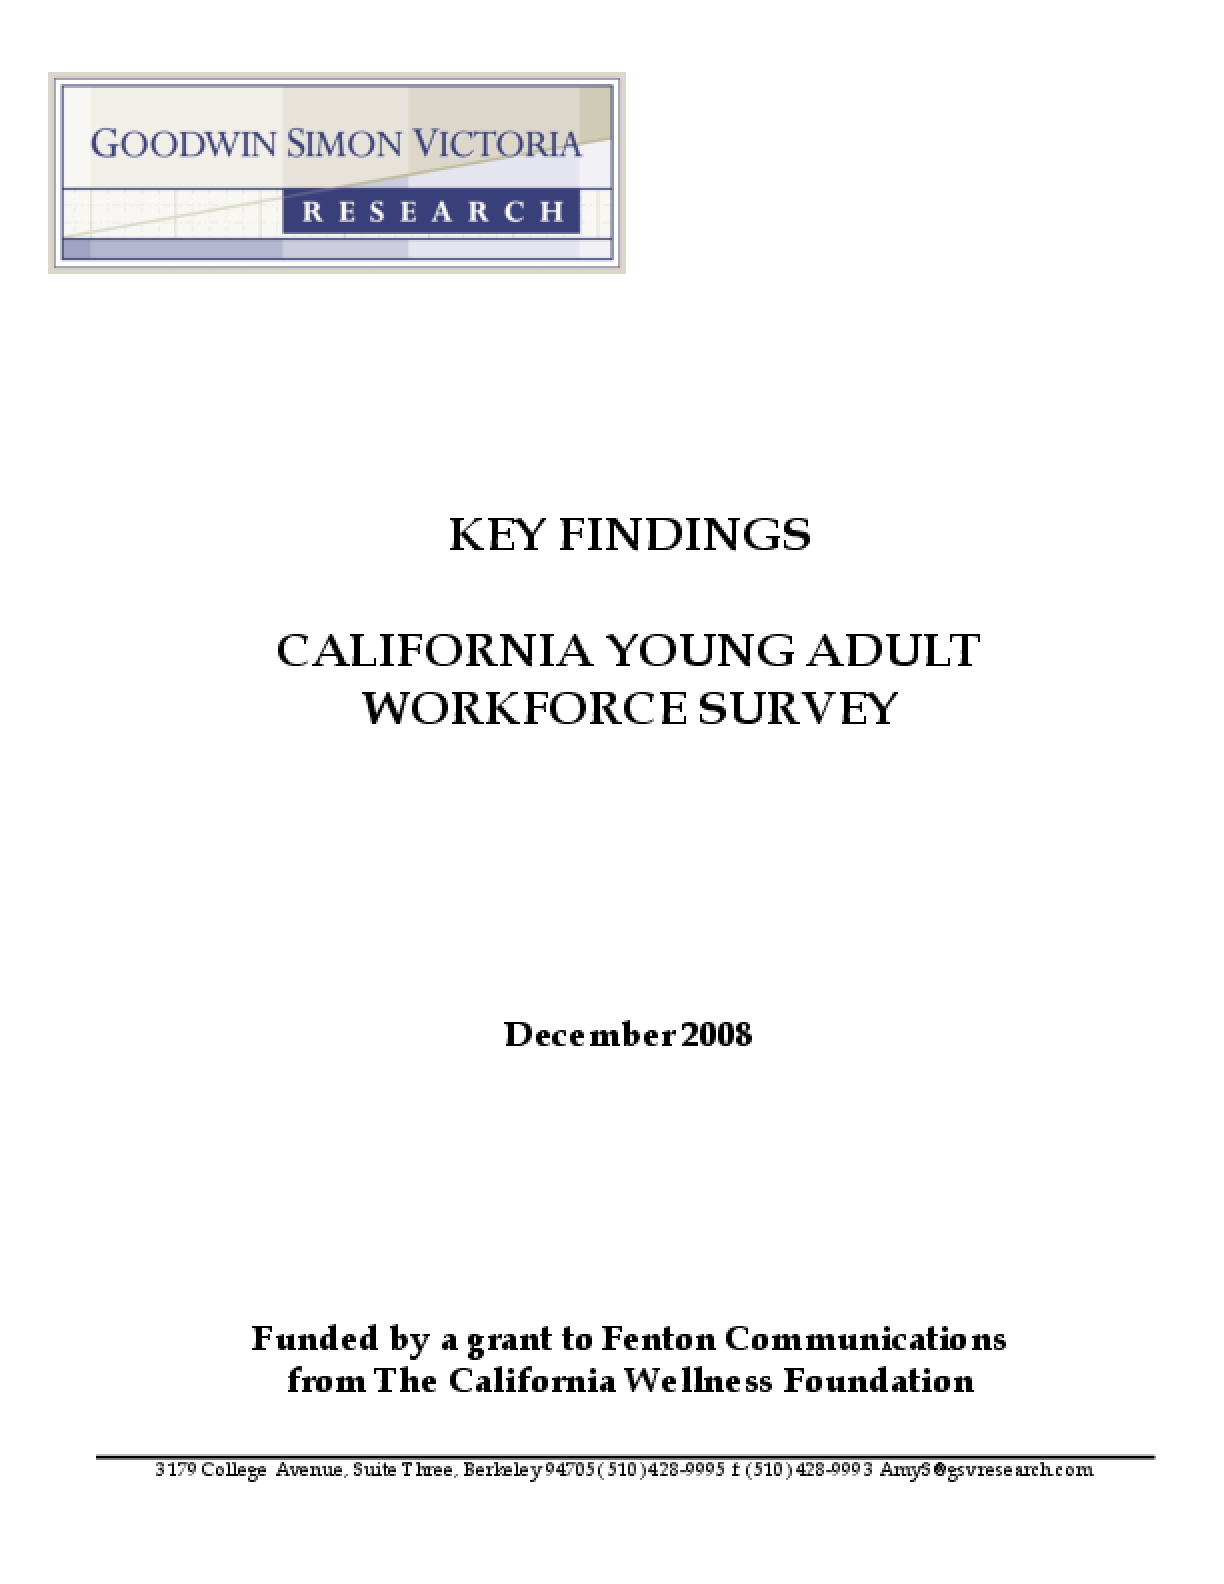 Key Findings: California Young Adult Workforce Survey